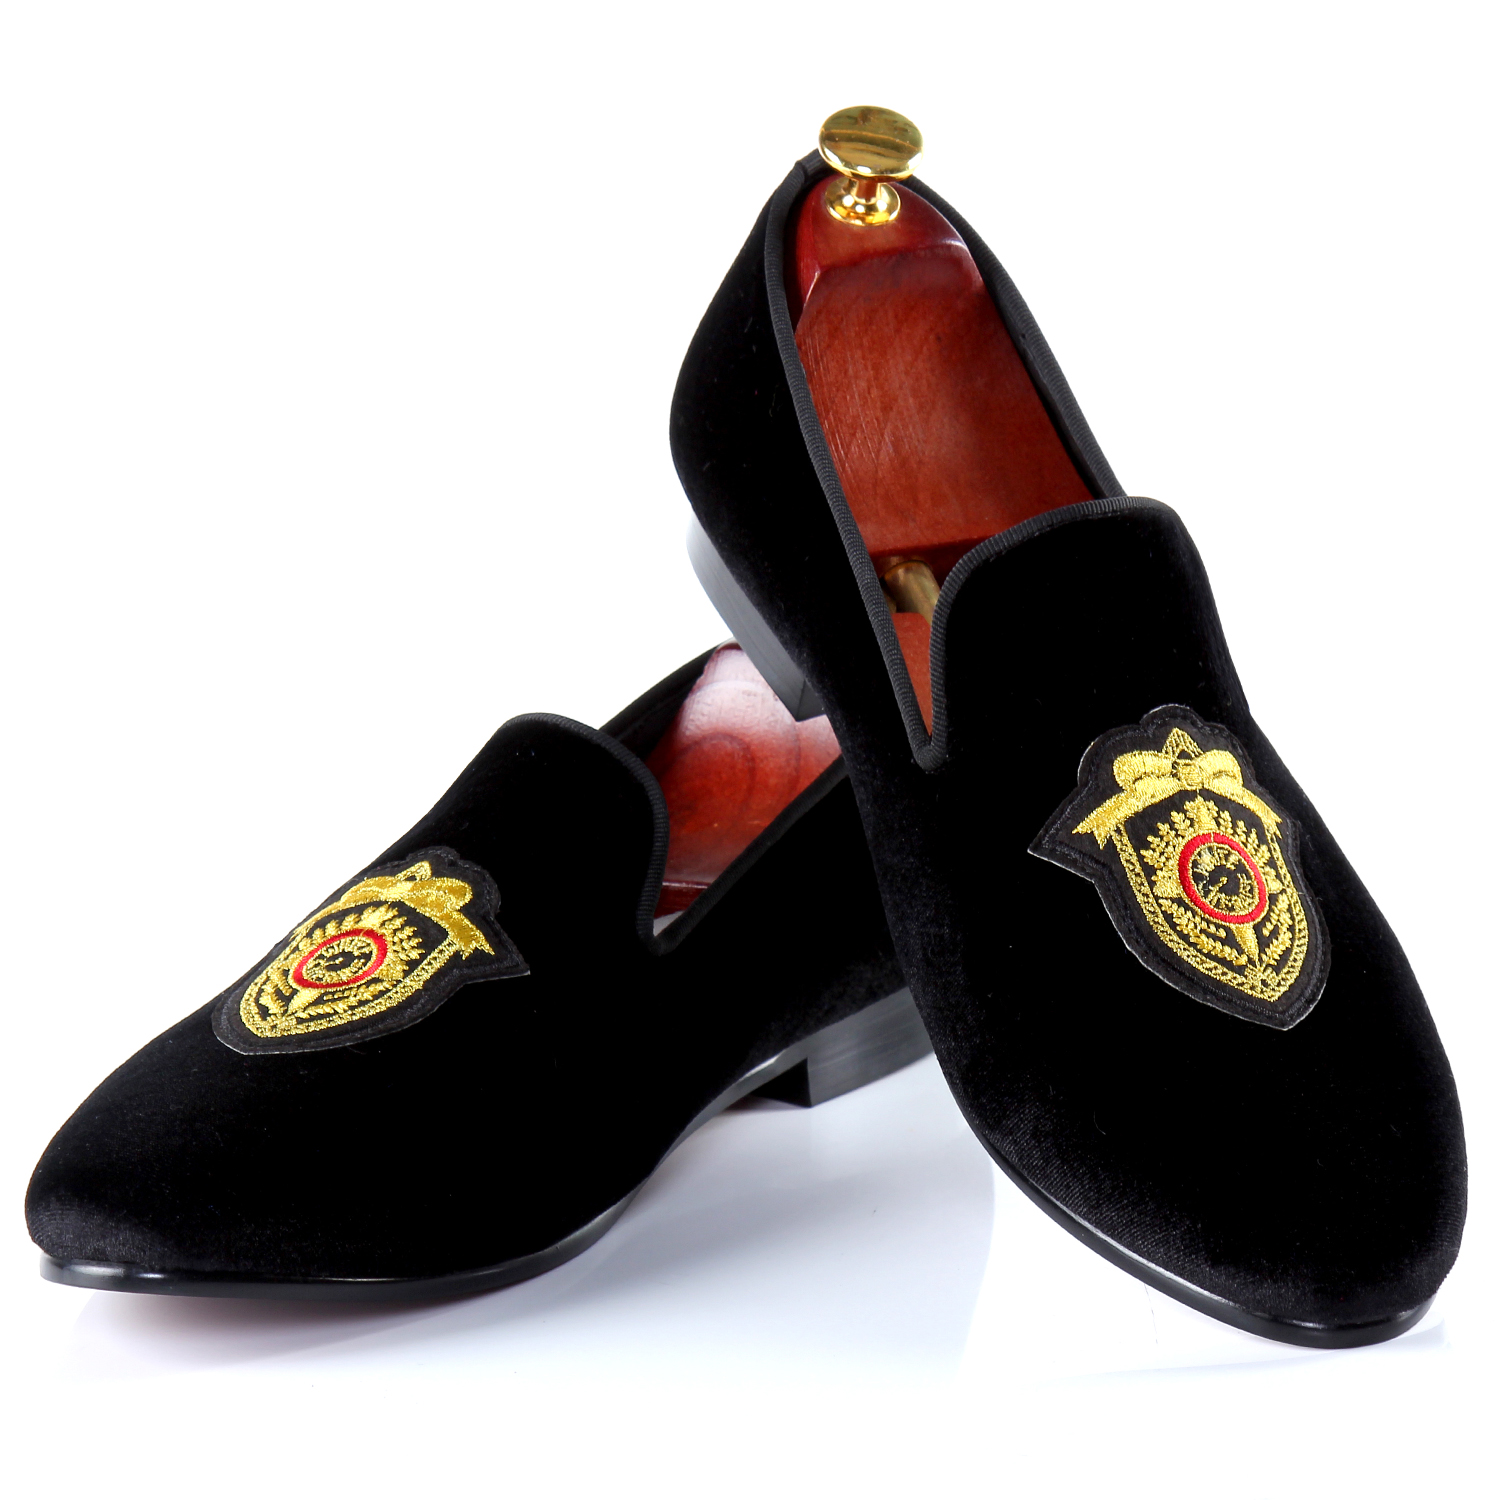 Men Loafer Shoes Badge Motif Black Velvet Slippers Fashion Party Shoes Free Shipping Size 7-14 nesti dante мыло огурец 250 гр